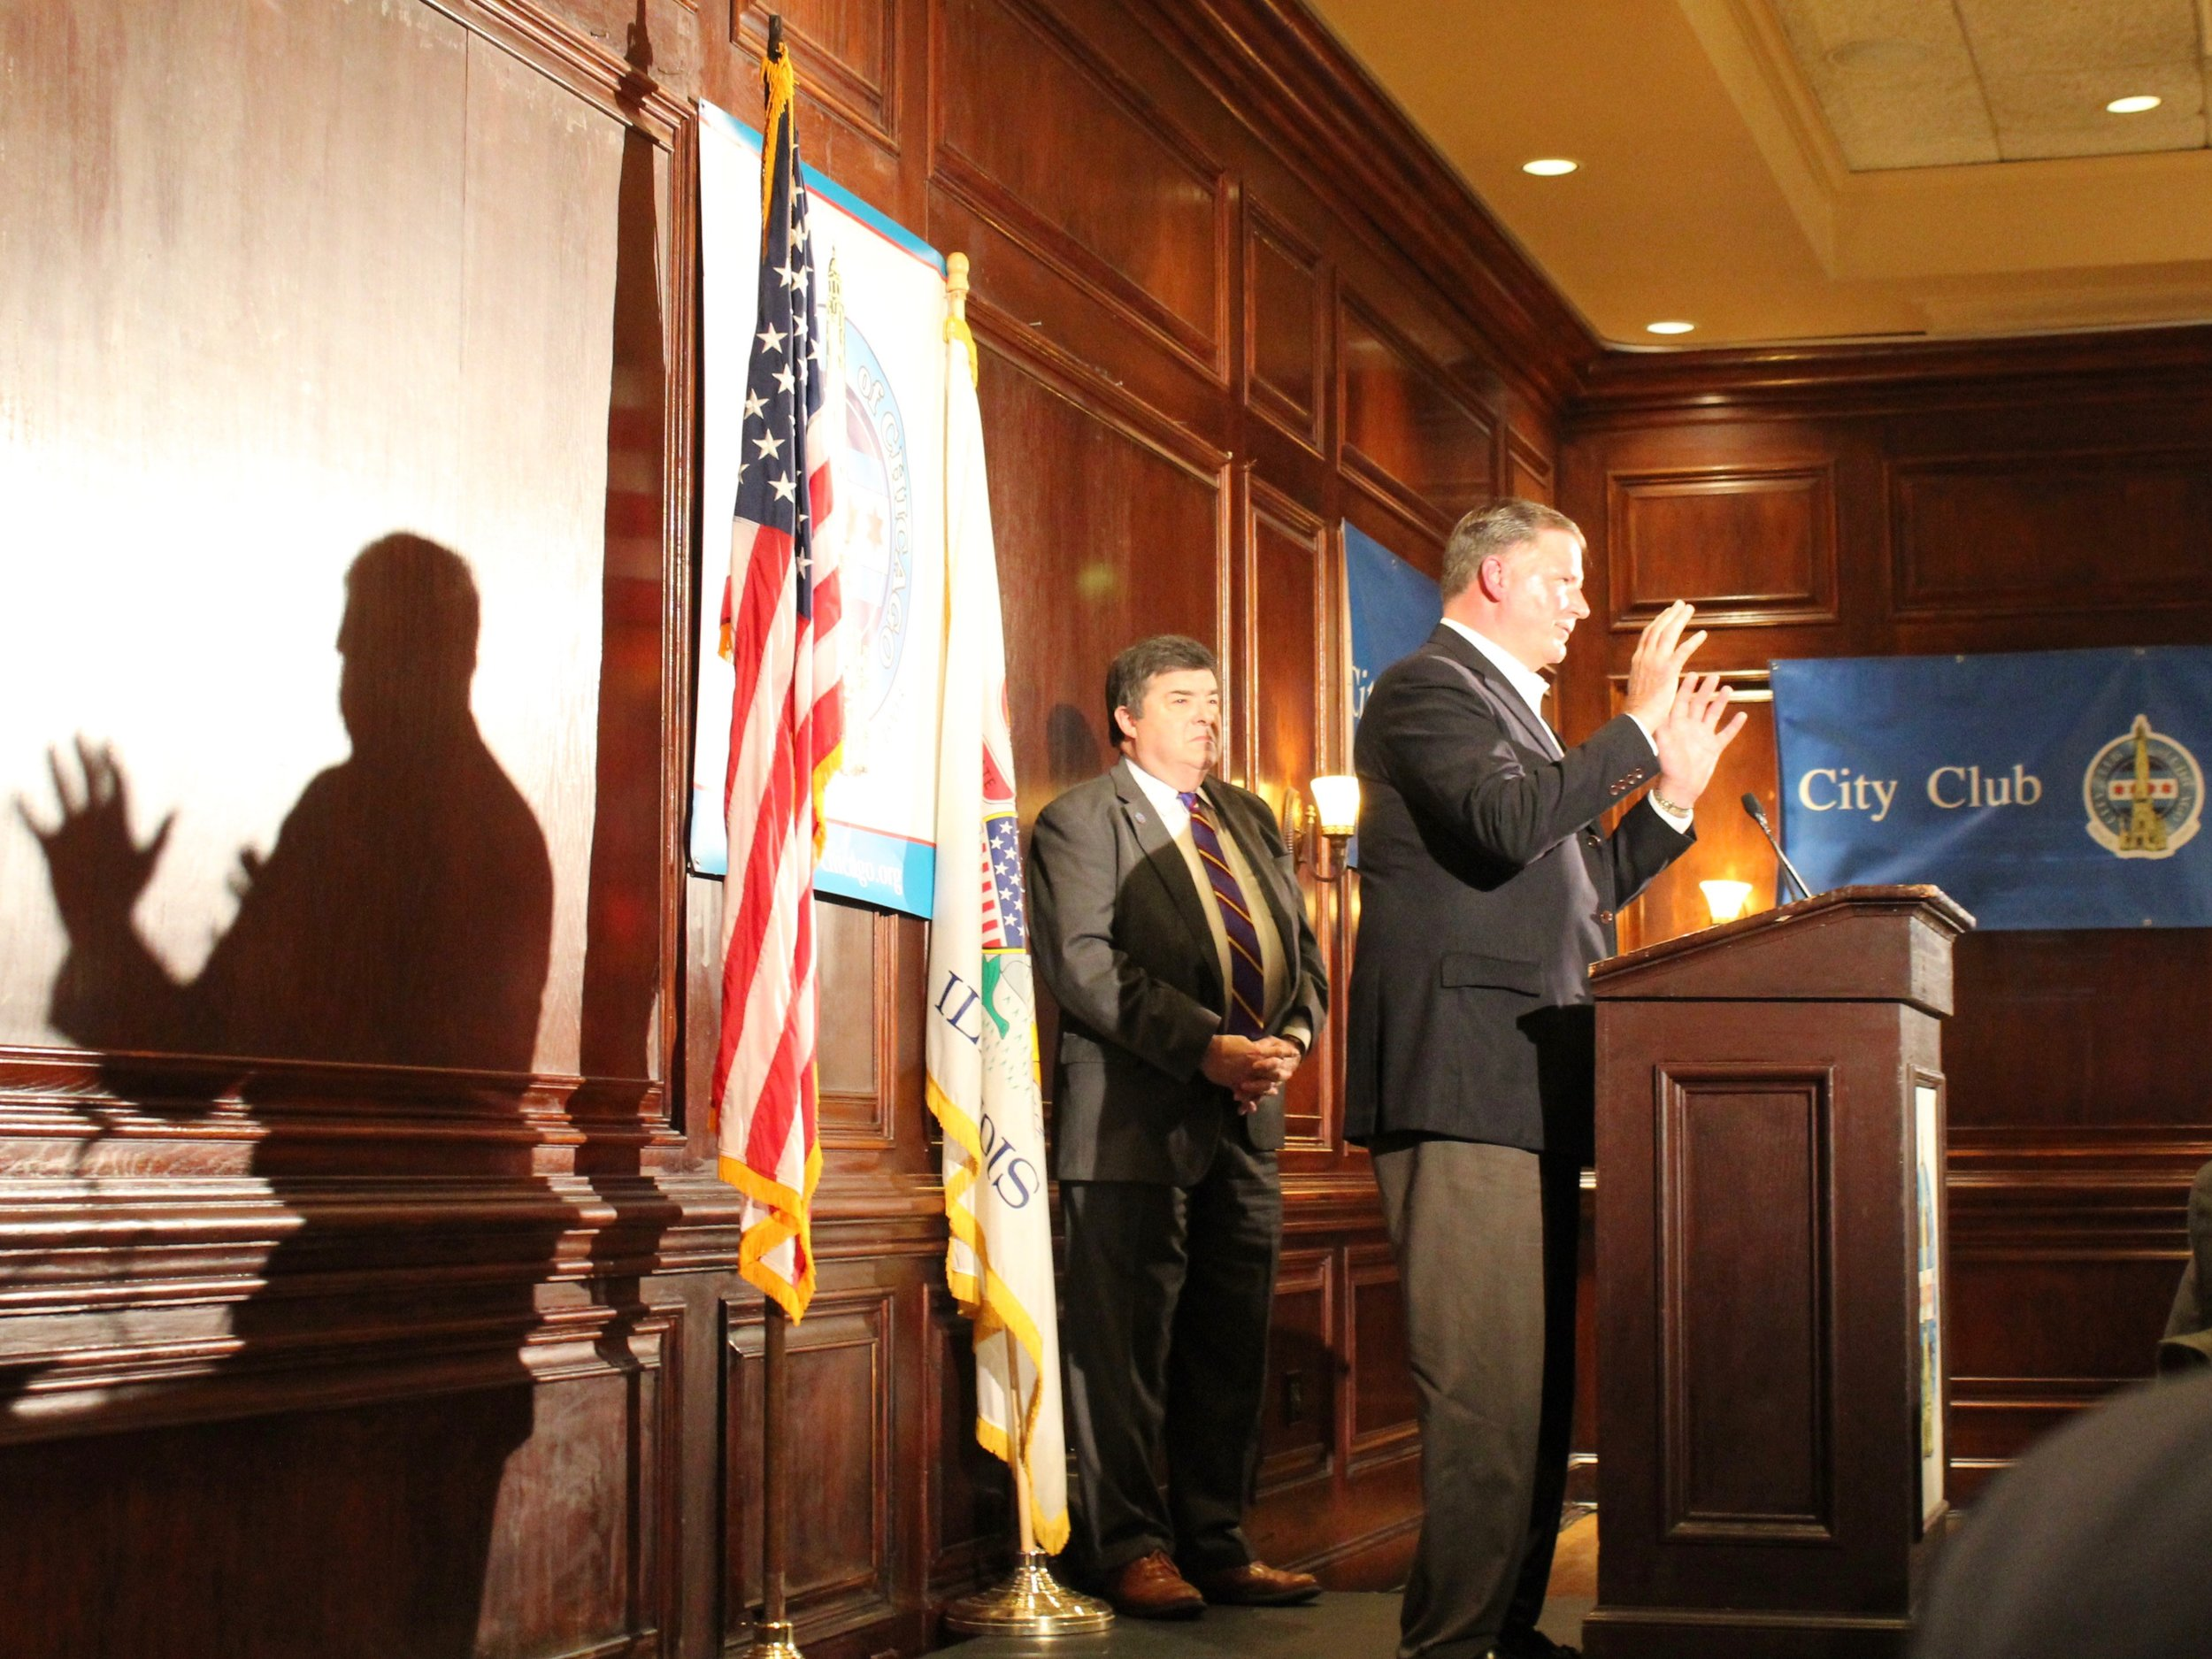 Sen. Bill Brady addresses the City Club of Chicago Tuesday. (One Illinois/Ted Cox)